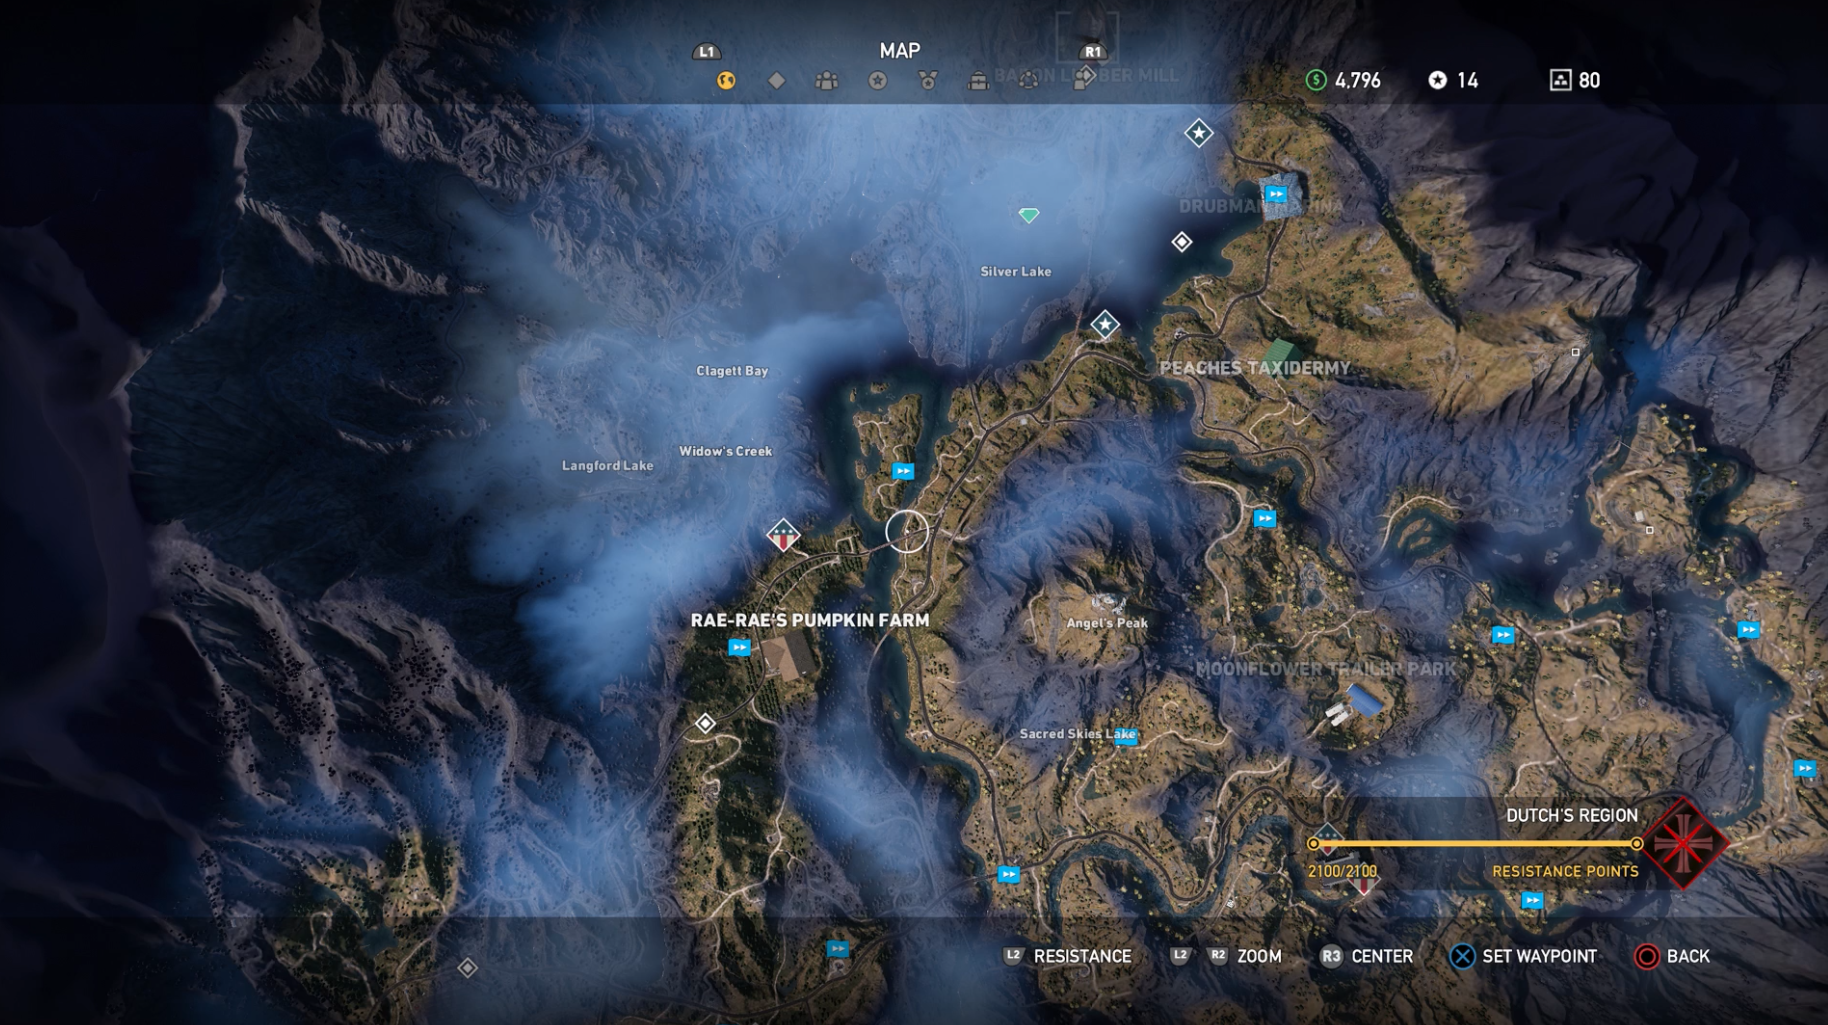 An example map from Far Cry showing the fog of war